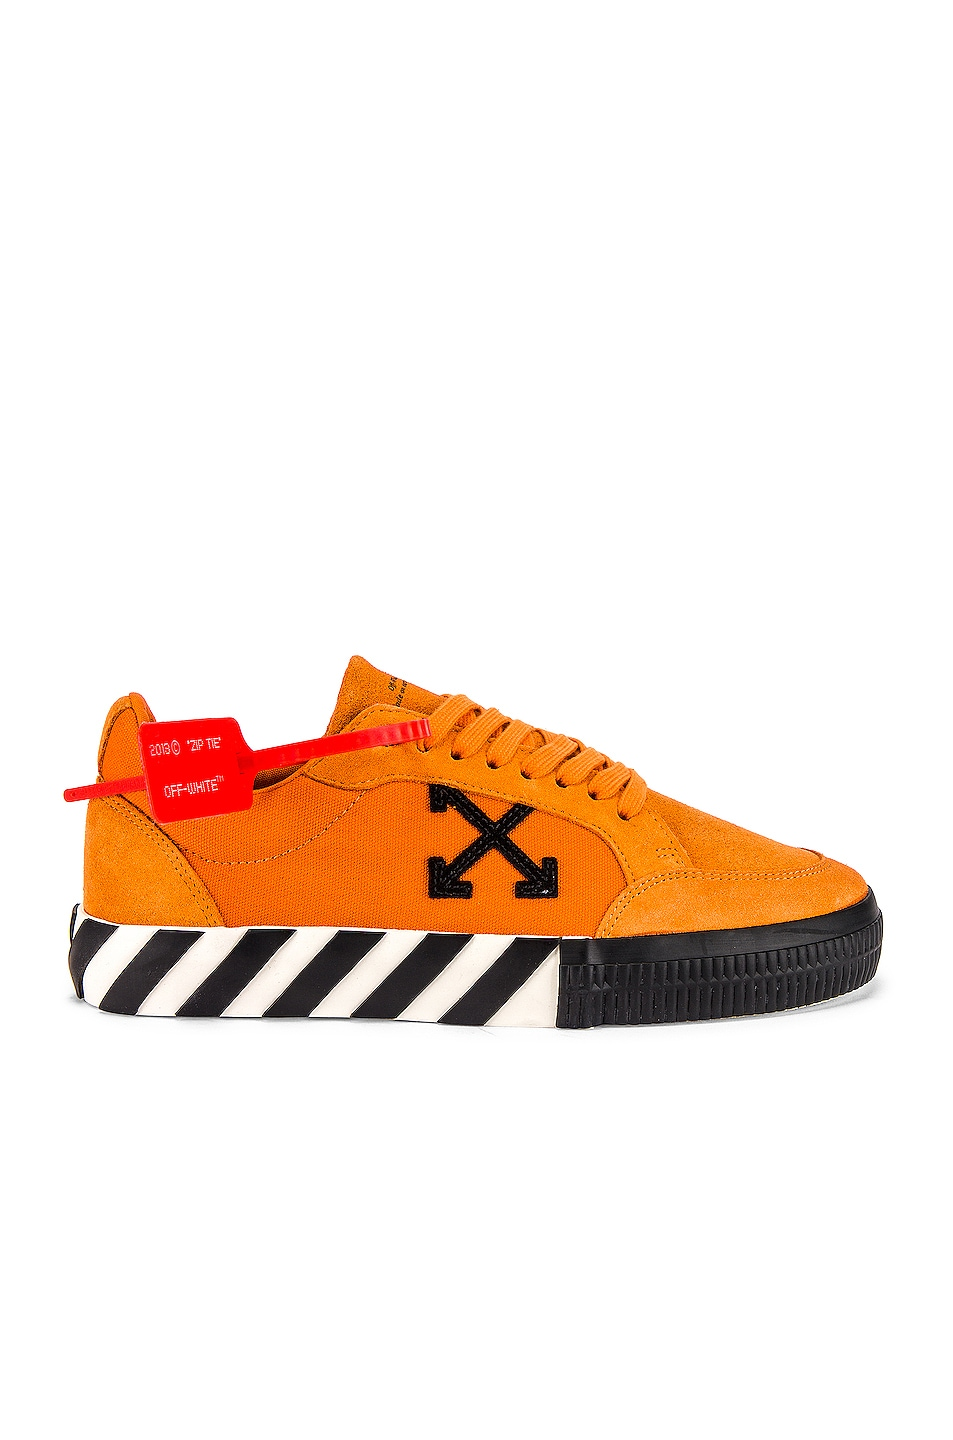 Image 2 of OFF-WHITE Low Vulcanized Sneaker in Orange & Black